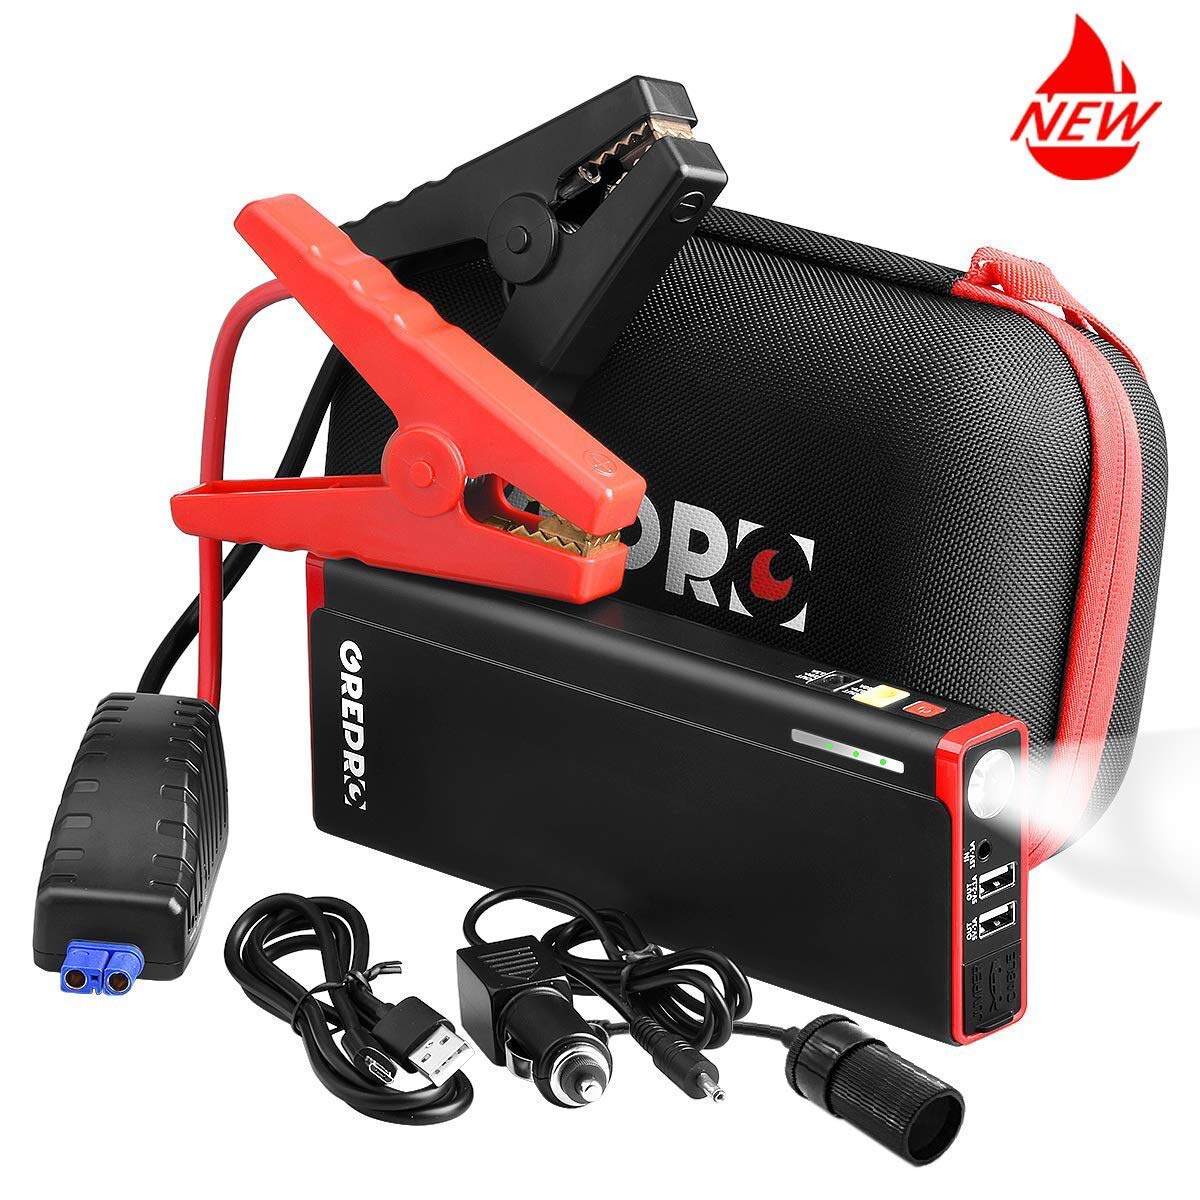 GREPRO Car Jump Starter Kit 500A 9000mAh For 12V Vehicle (up To 4.5L Gas, 2.5L Diesel Engine), Auto Battery Booster With LED Flashlight And LCD Screen, Portable Power Pack With Quick Charge